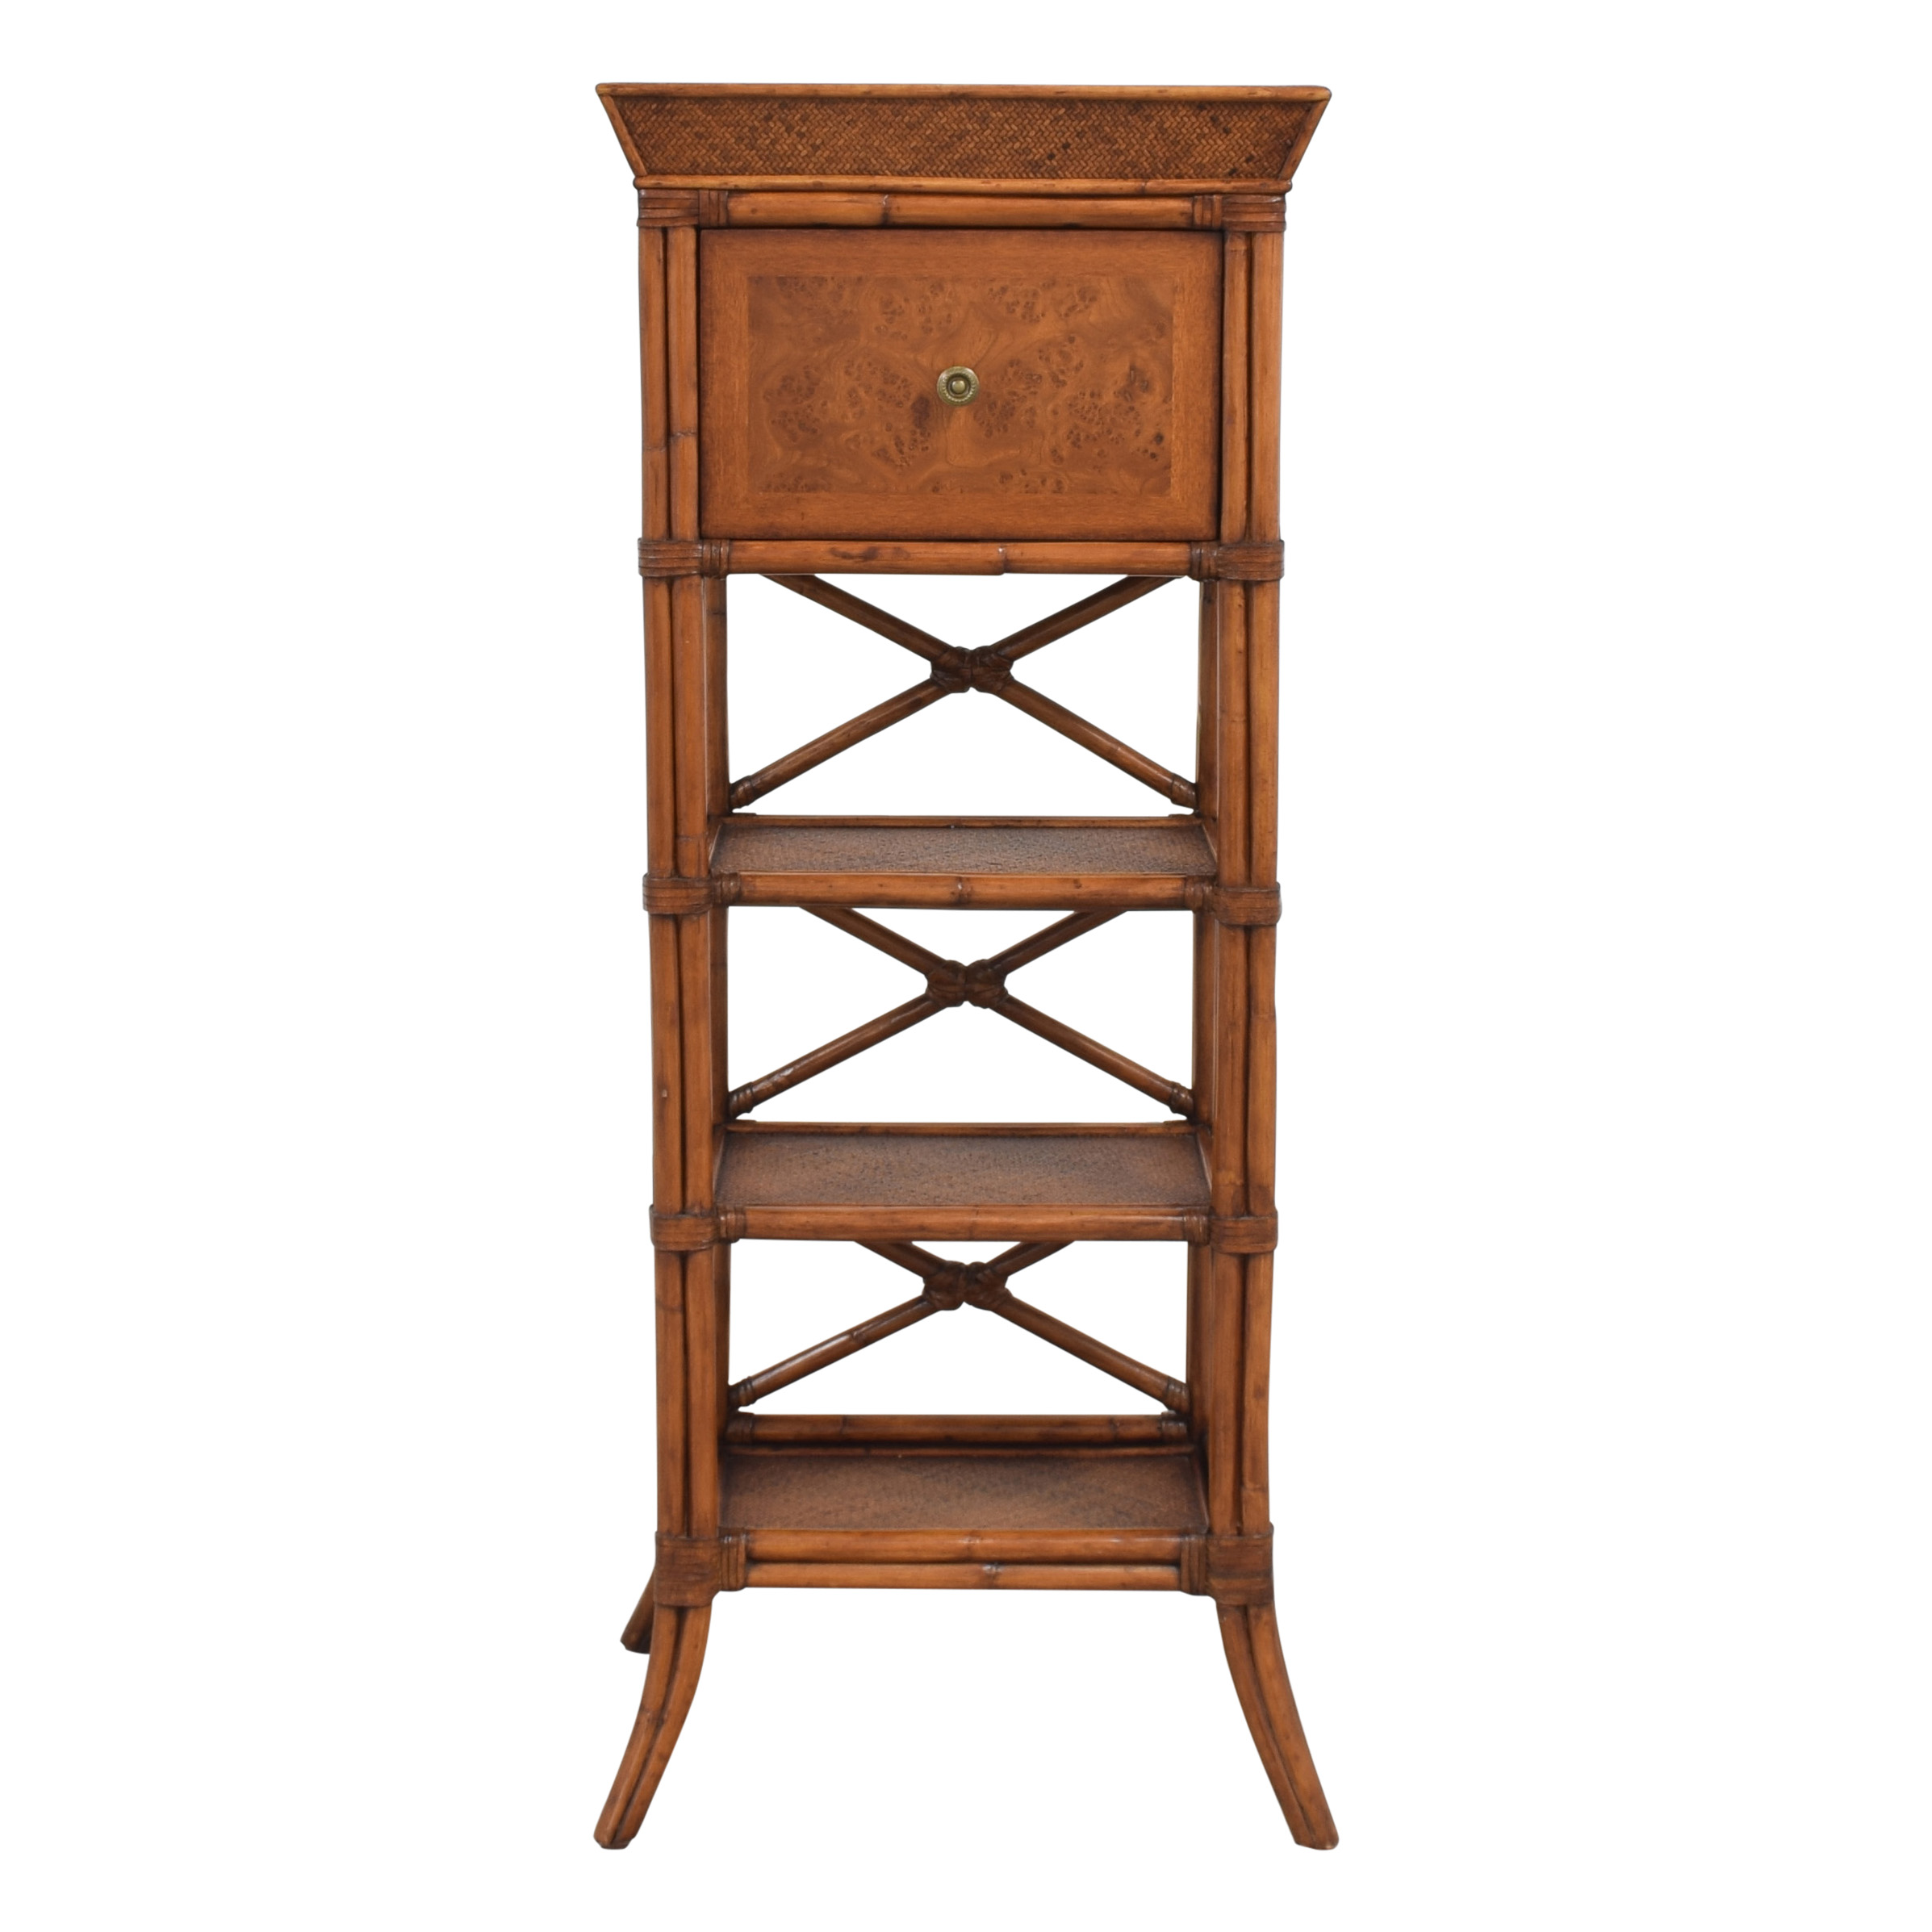 Bamboo Style Storage Tower second hand